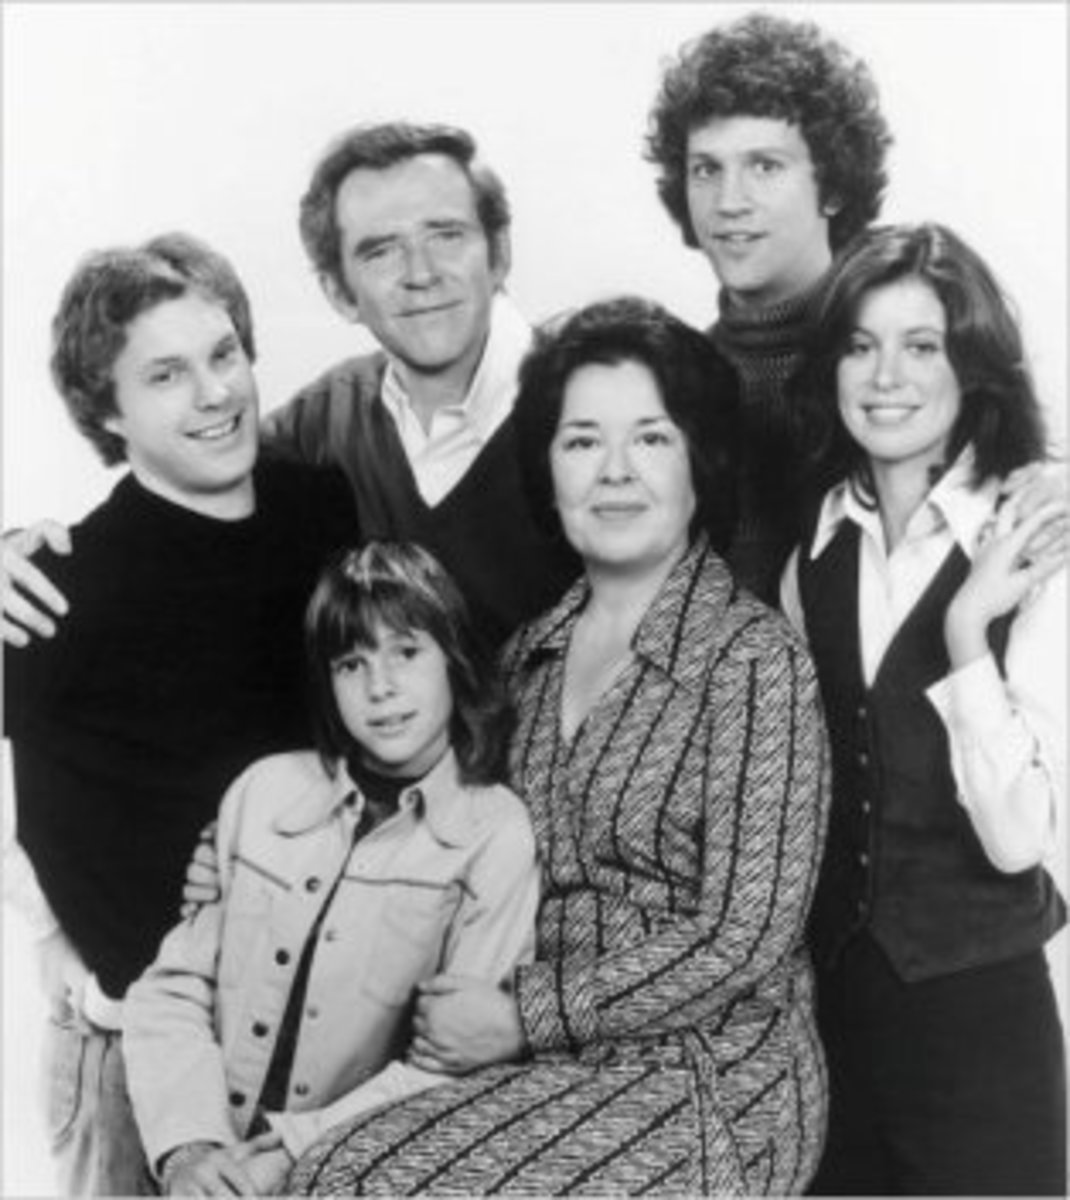 The Cast of Family (TV Series)